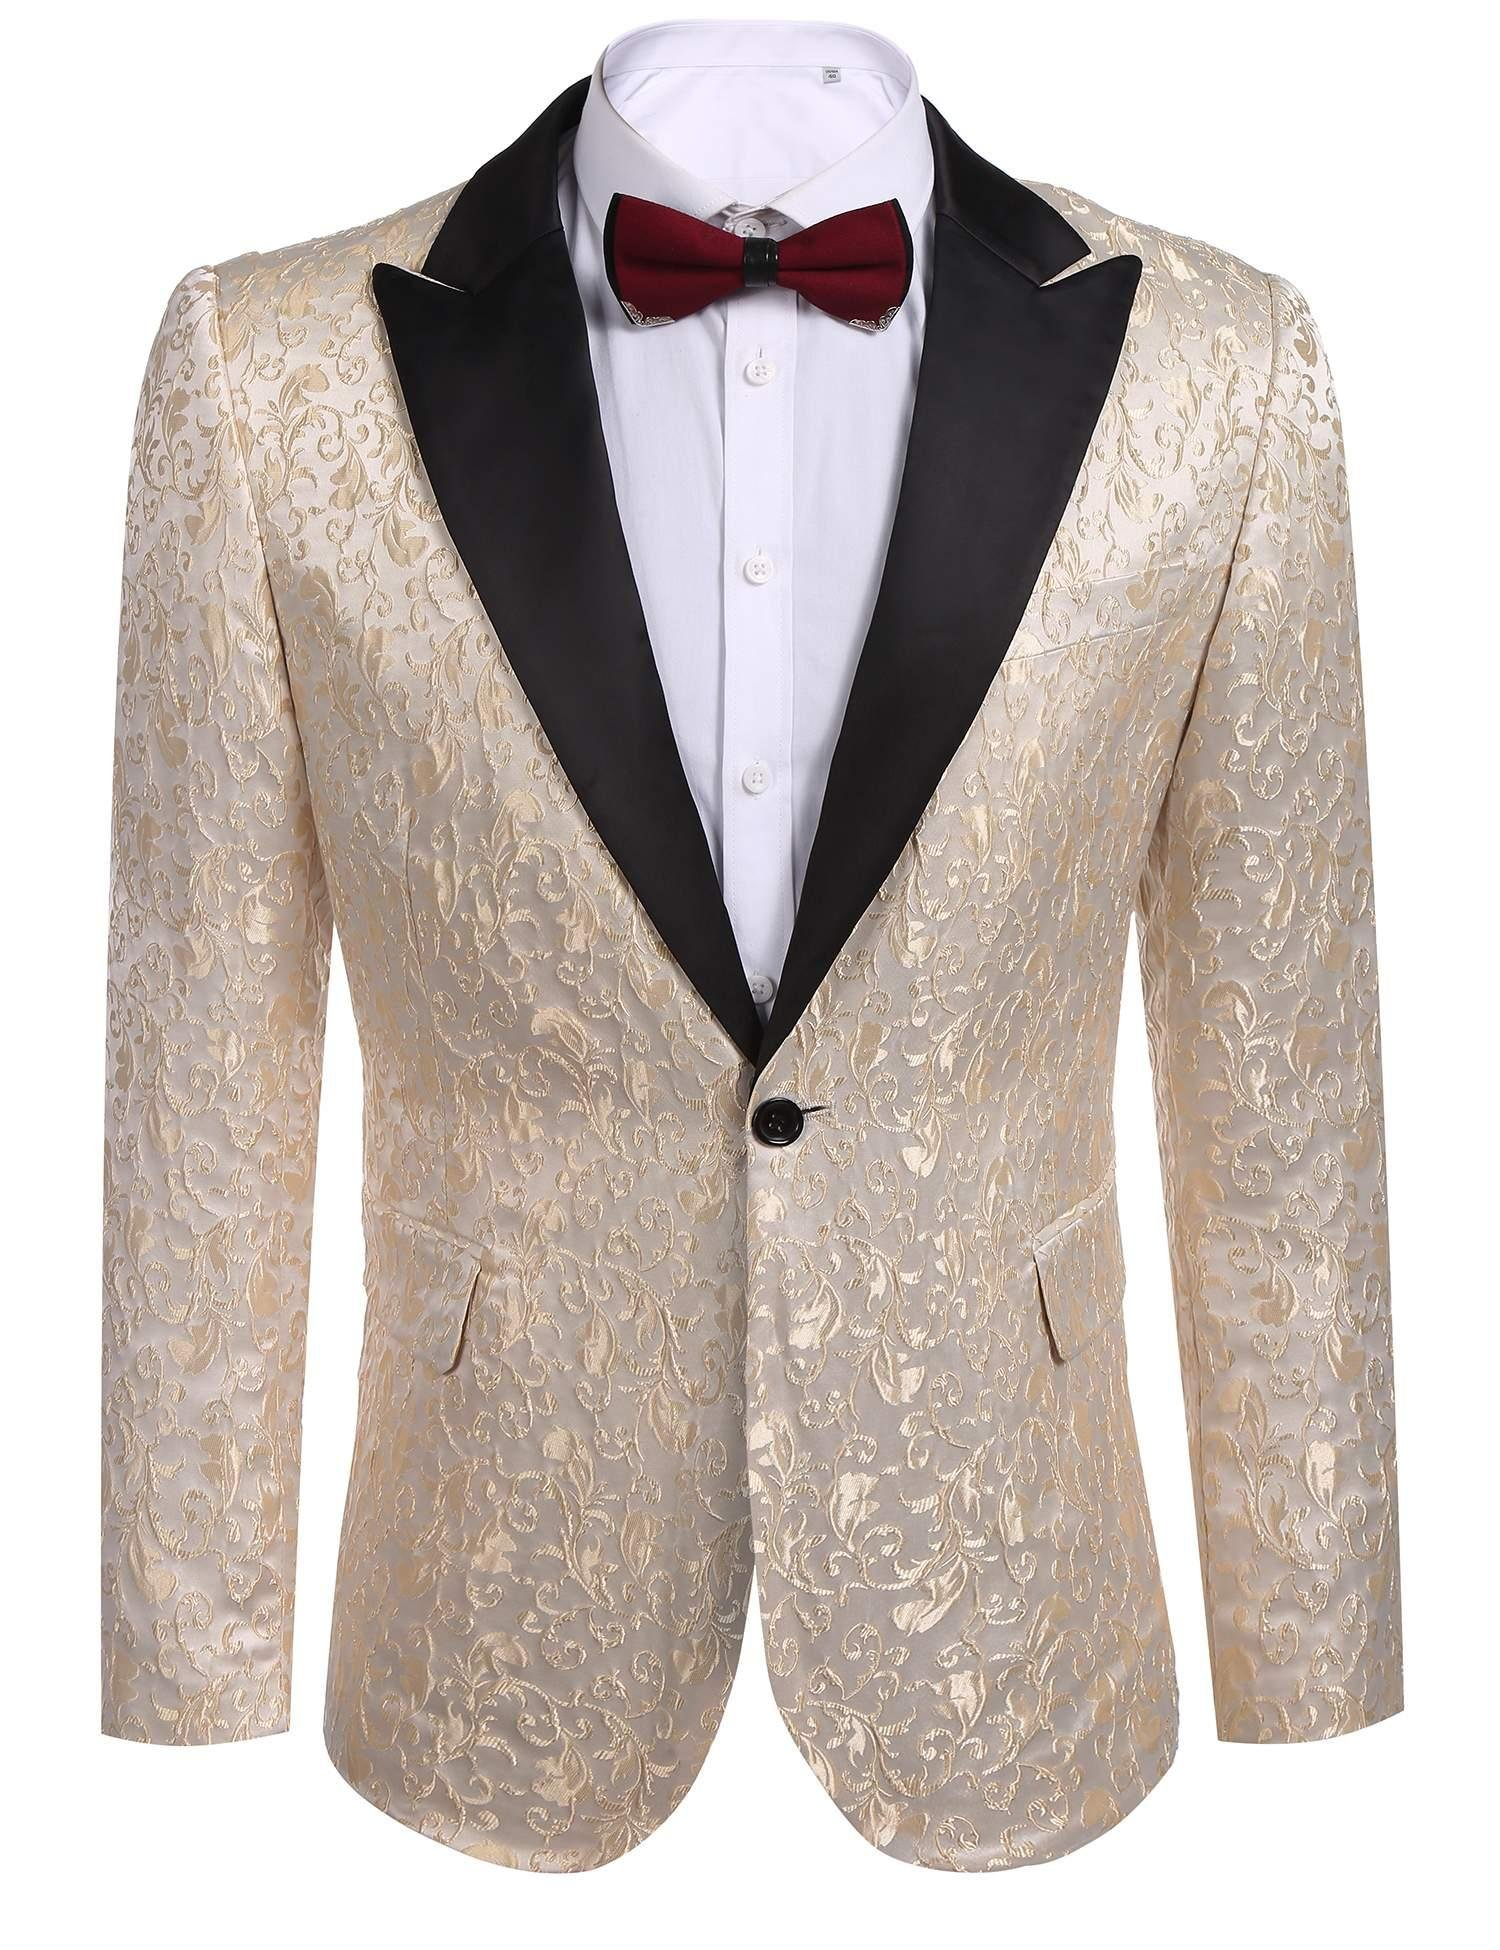 COOFANDY Men's Floral Party Dress Suit Stylish Dinner Jacket Wedding Blazer One Button Tuxdeo,Golden,US L